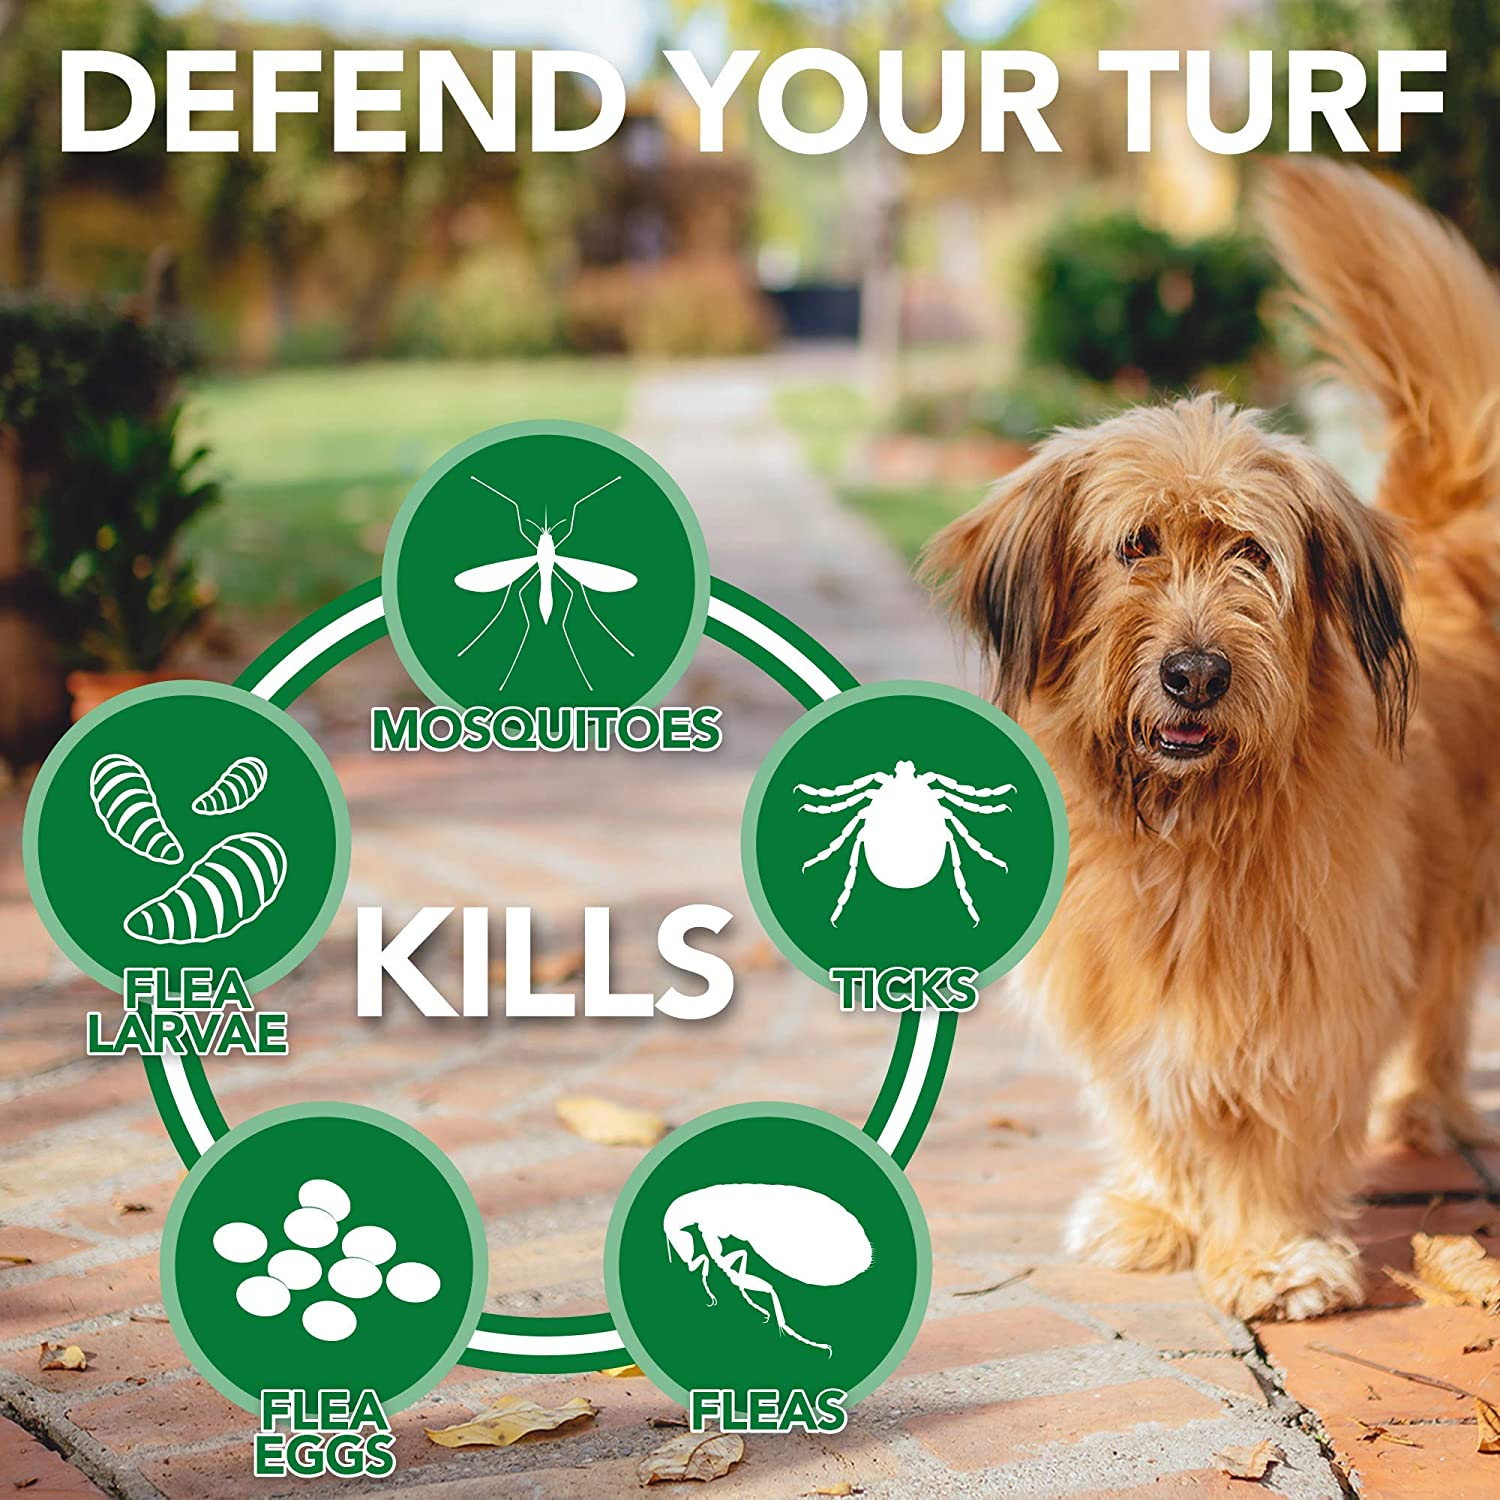 Vet's Best Flea and Tick Yard and Kennel Spray | Yard Treatment Spray Kills  Mosquitoes, Fleas, and Ticks with Certified Natural Oils